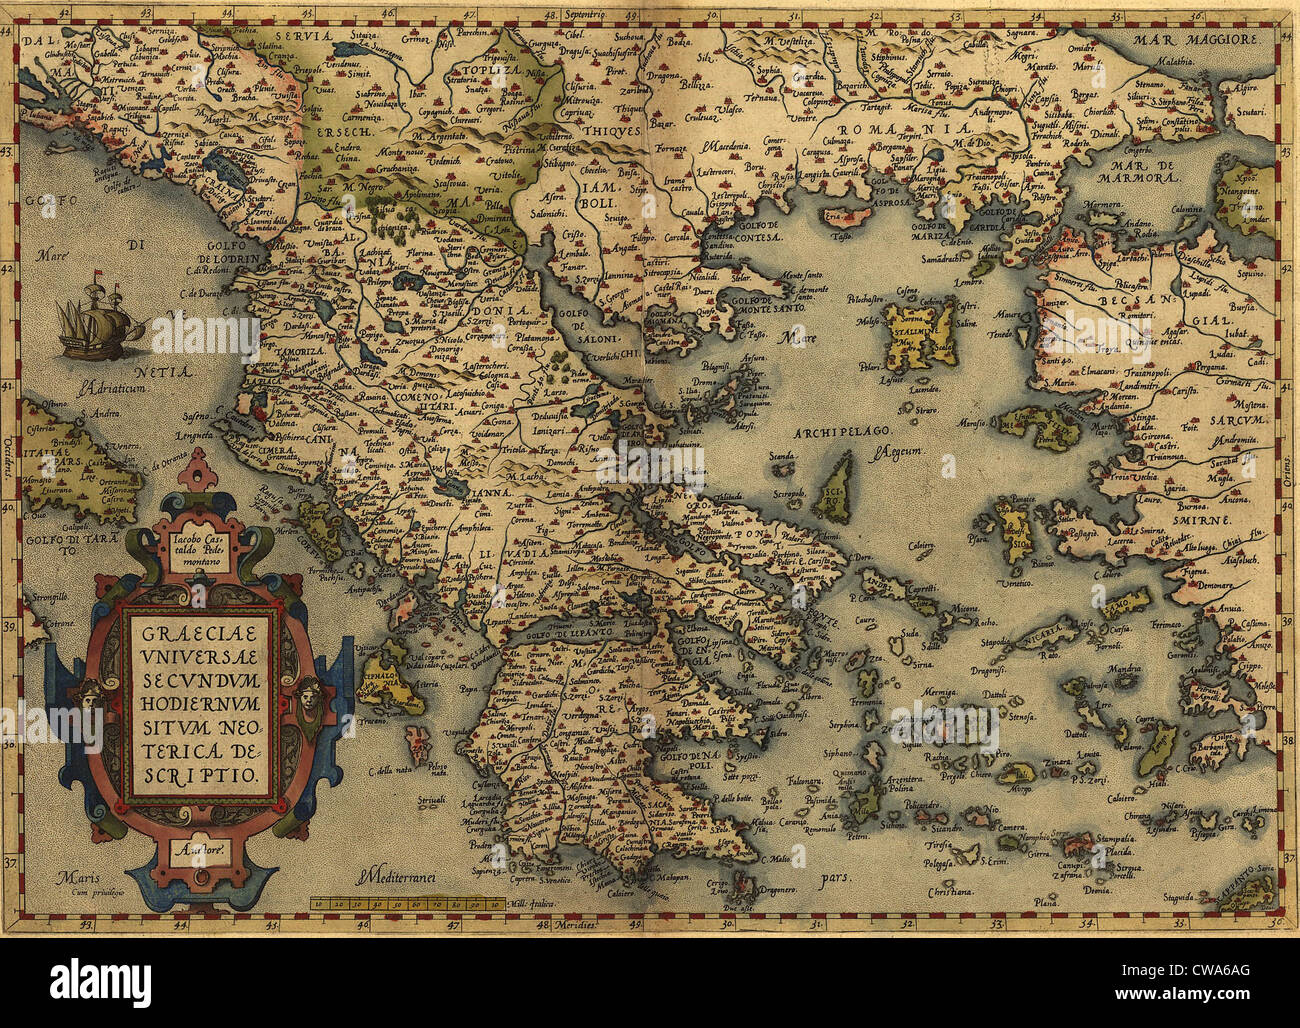 1570 map of Greece, then under the rule of the Ottoman Empire. From Abraham  Ortelius, Theatrvm orbis terrarvm.